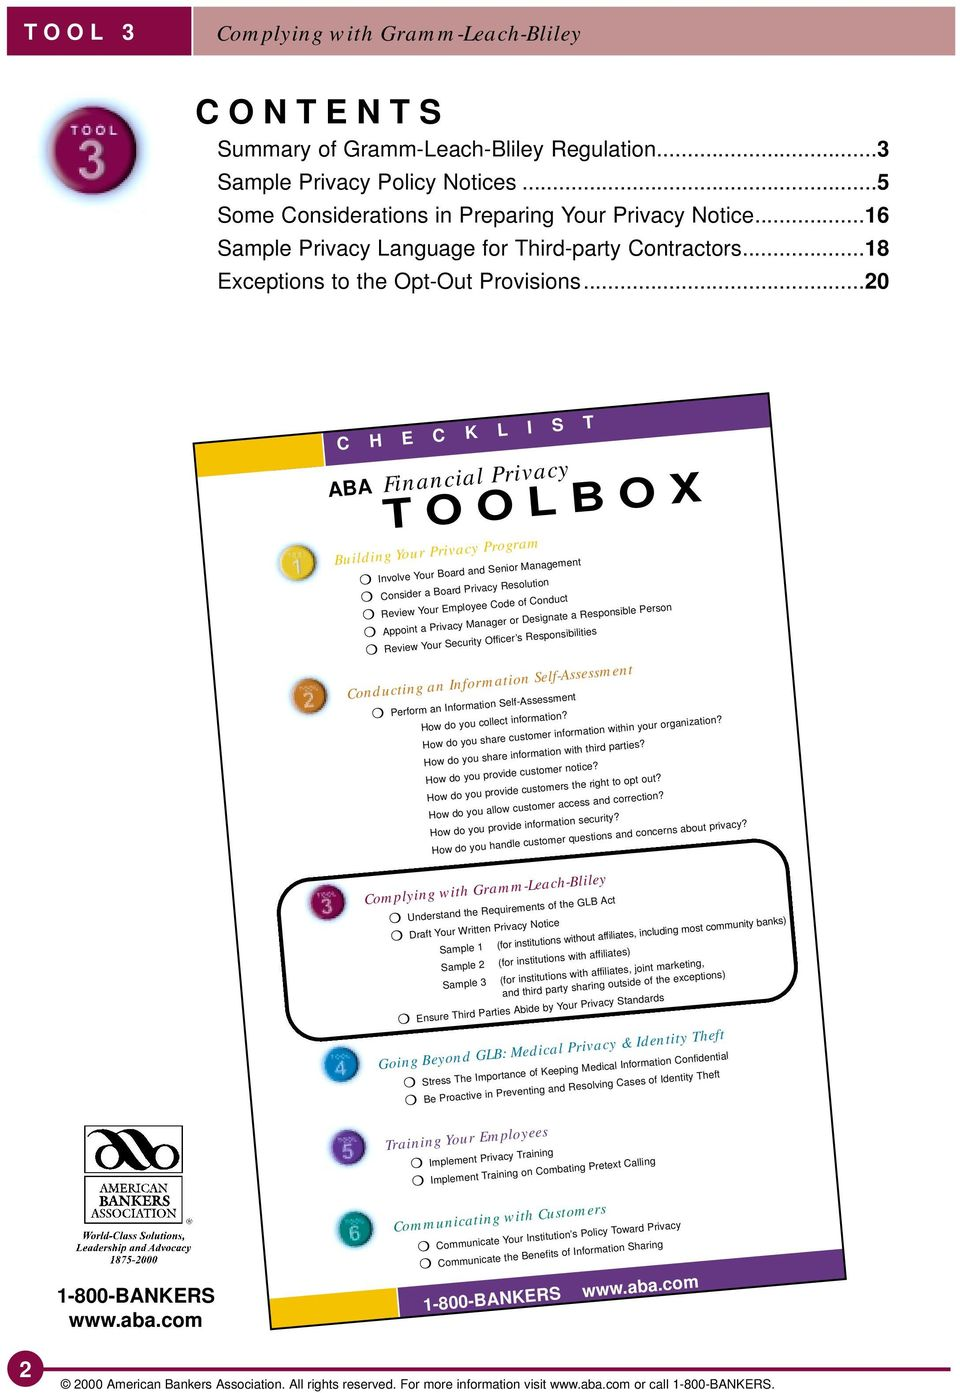 TOOLBOX  ABA Financial Privacy - PDF